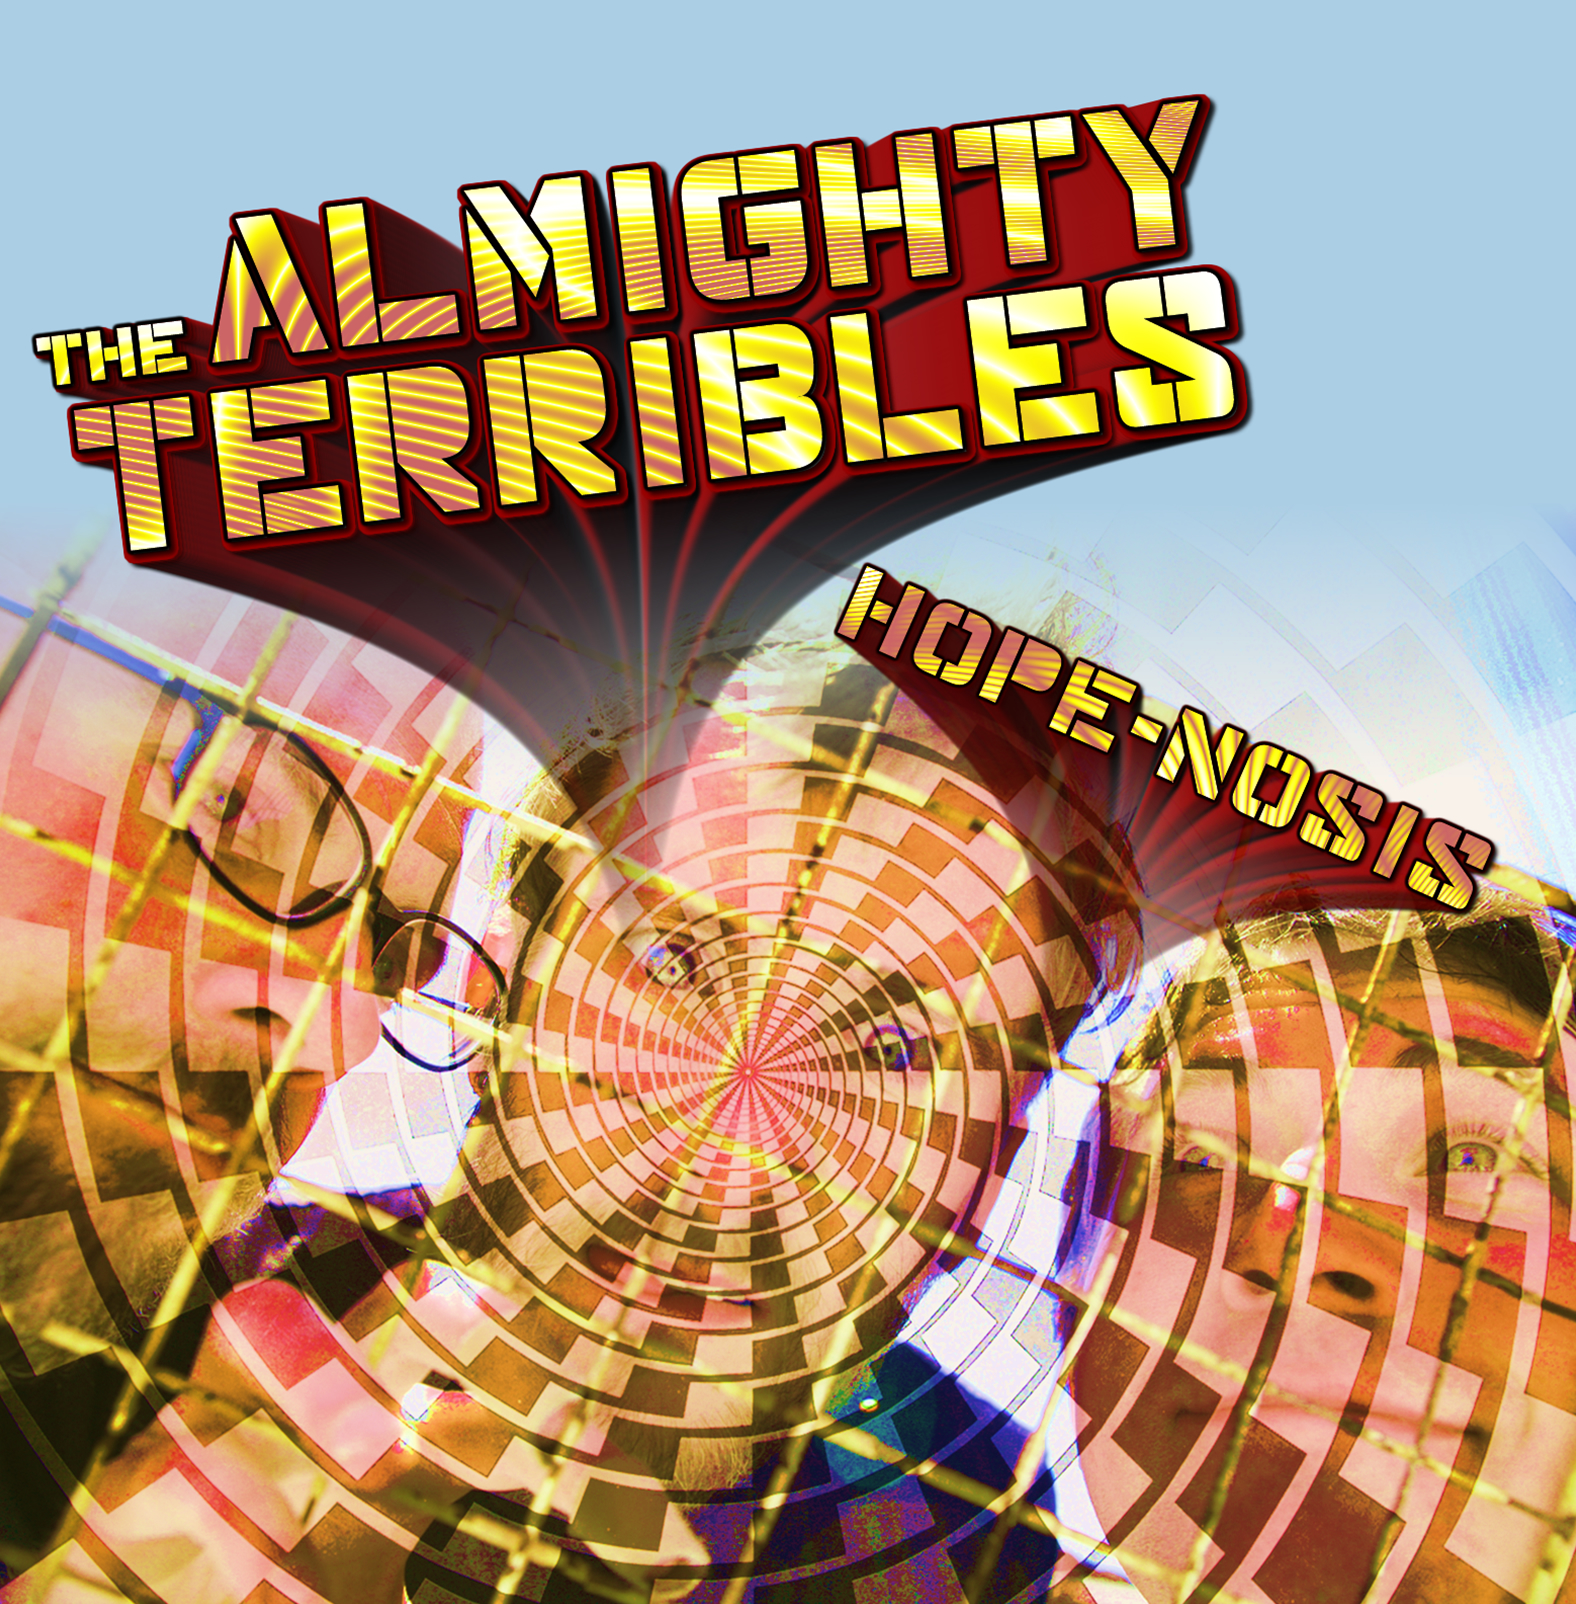 THE ALMIGHTY TERRIBLES - HOPE-NOSIS